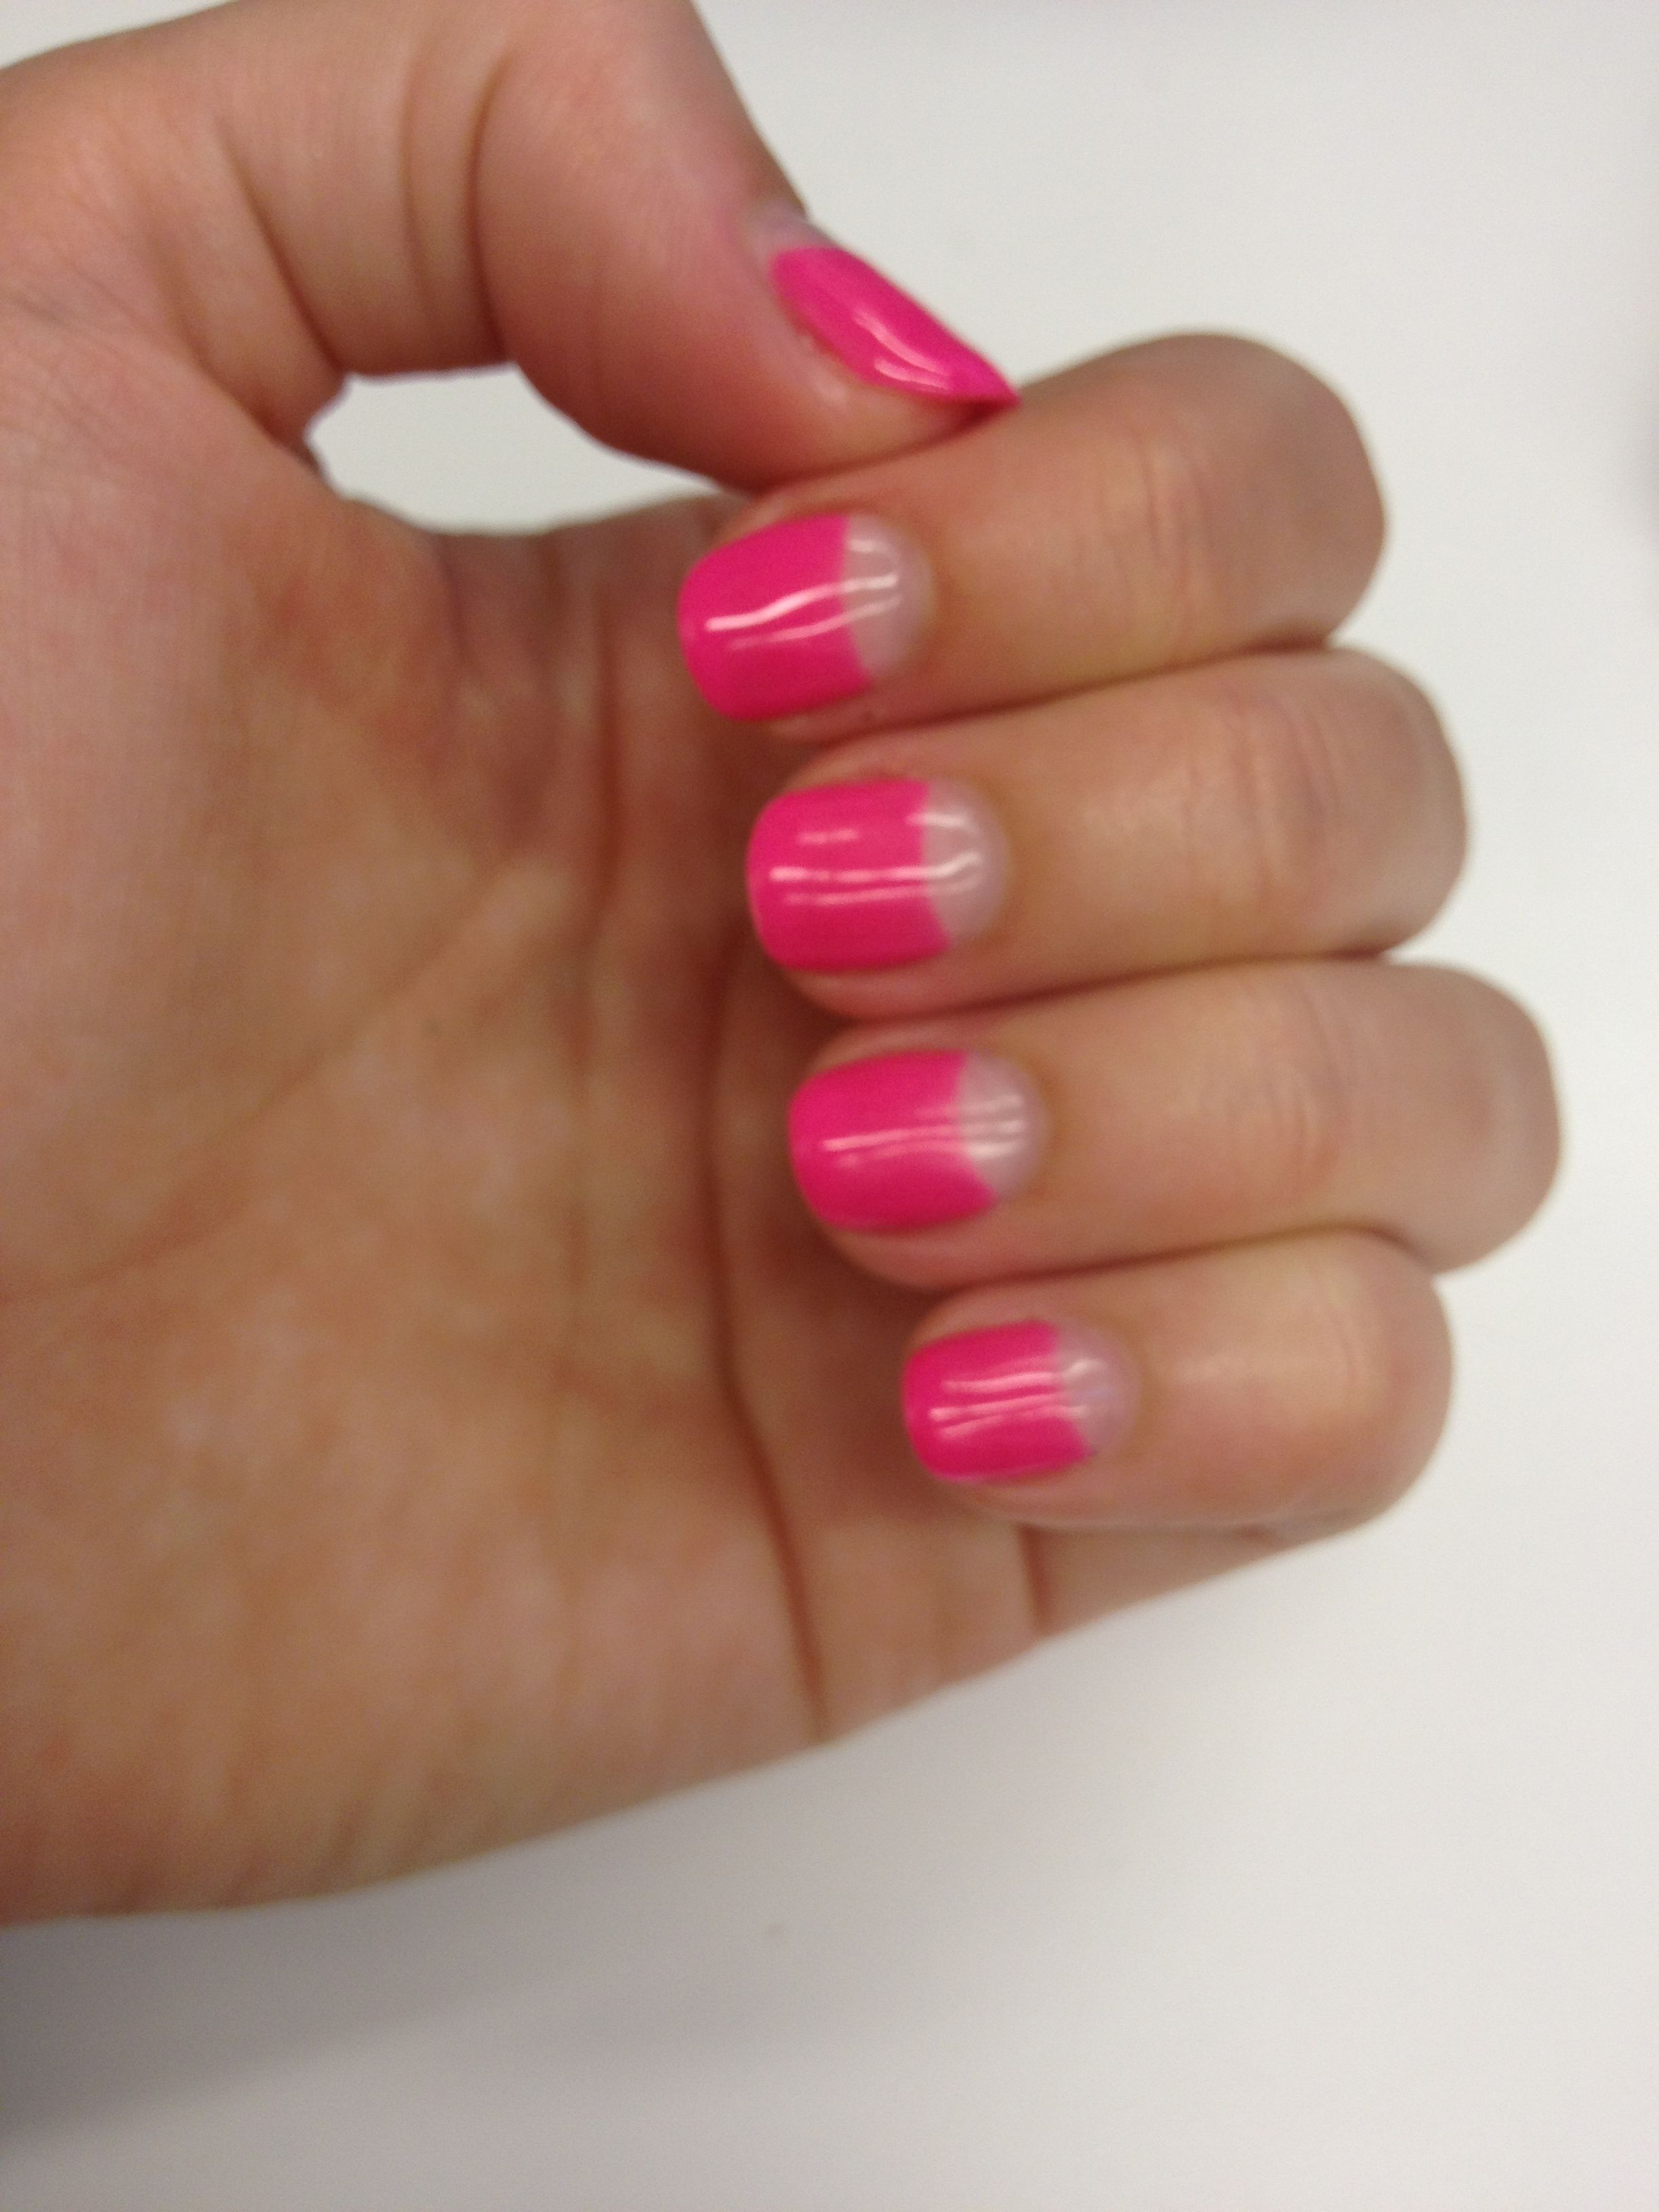 Reverse French nails | Nail Art | Pinterest | French, Nails and ...